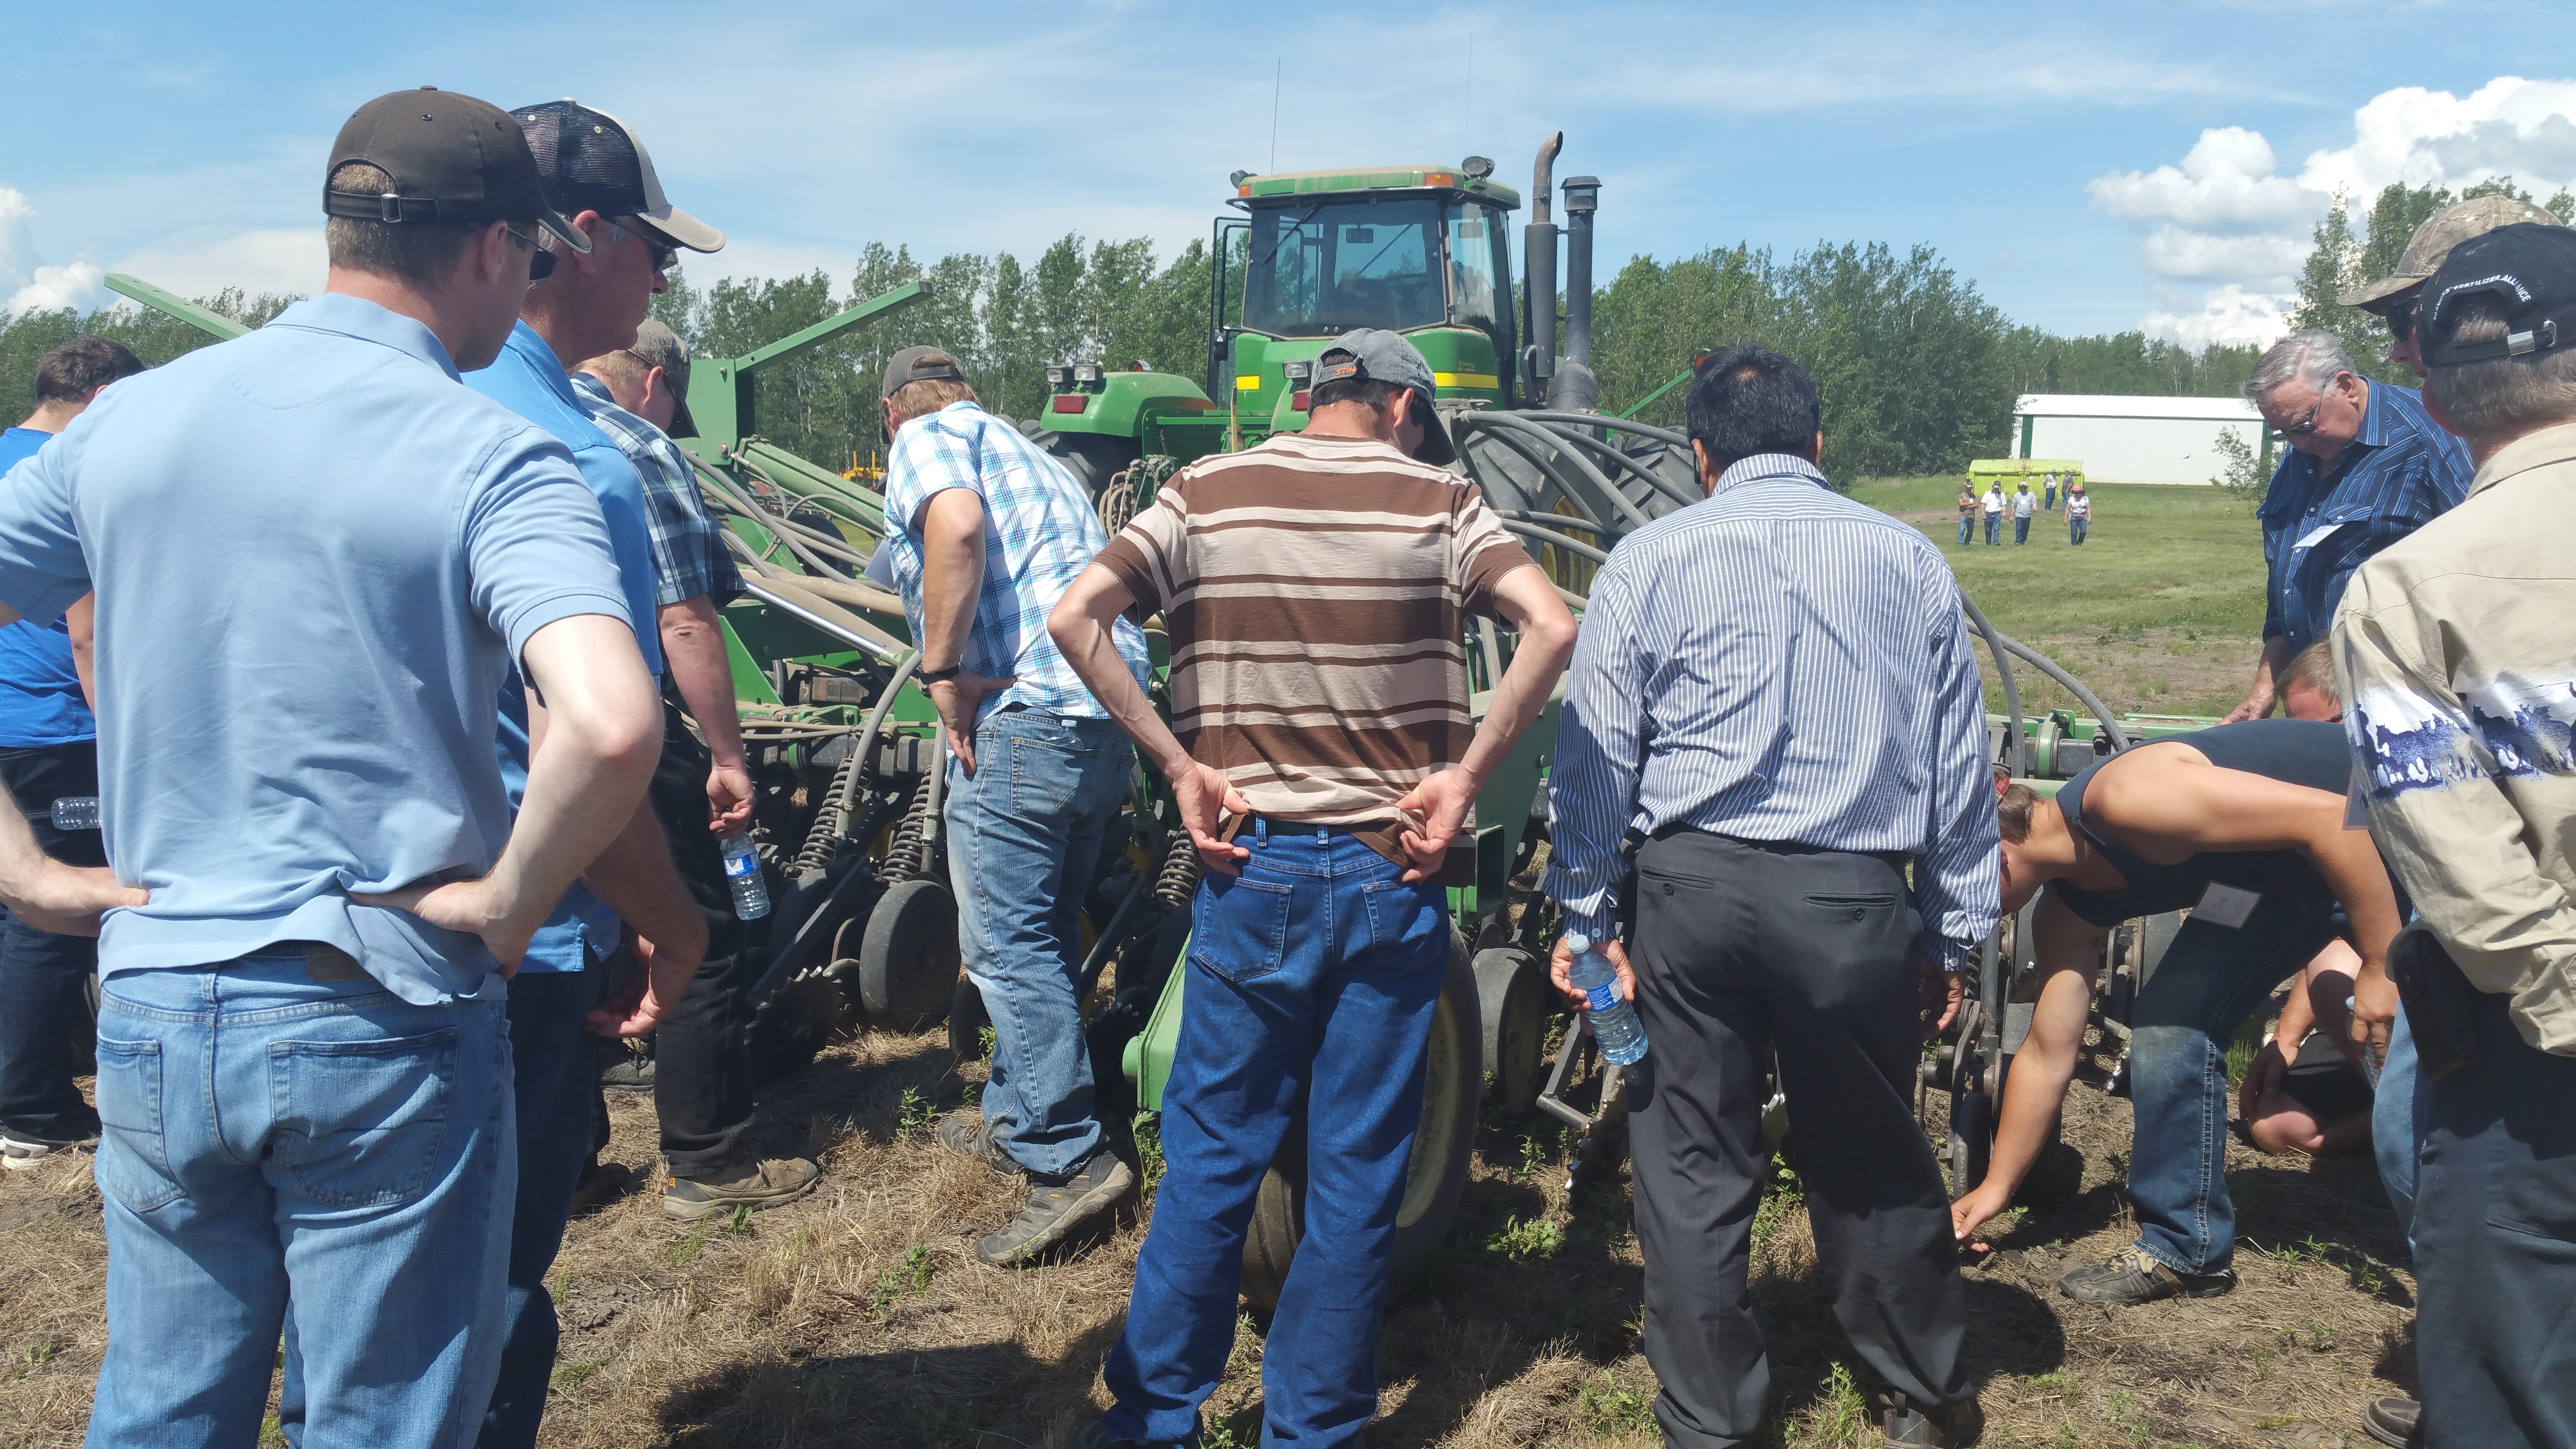 Demo of Reuben Loewen's JD 7377 no-till drill